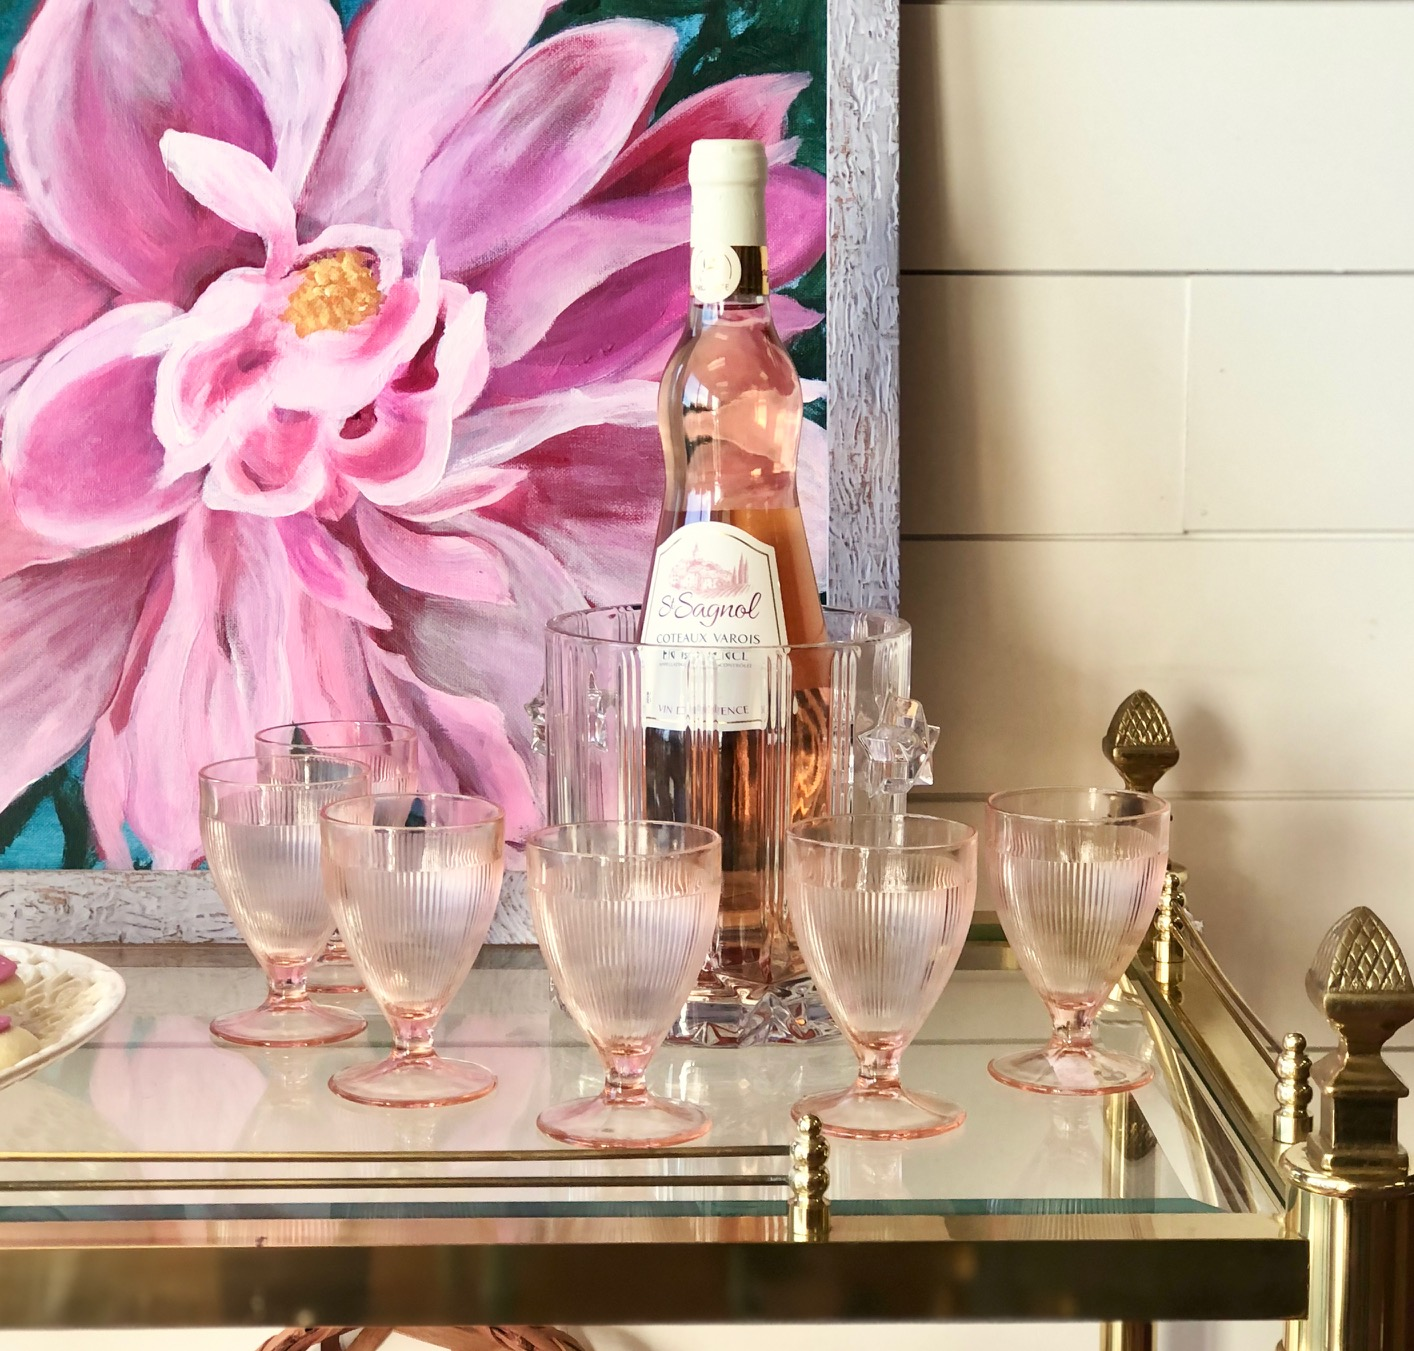 Use the crystal ice bucket to keep your rose wine perfectly chilled and why not continue the blush tones by pouring in miniature wine glasses in coordinating hues?